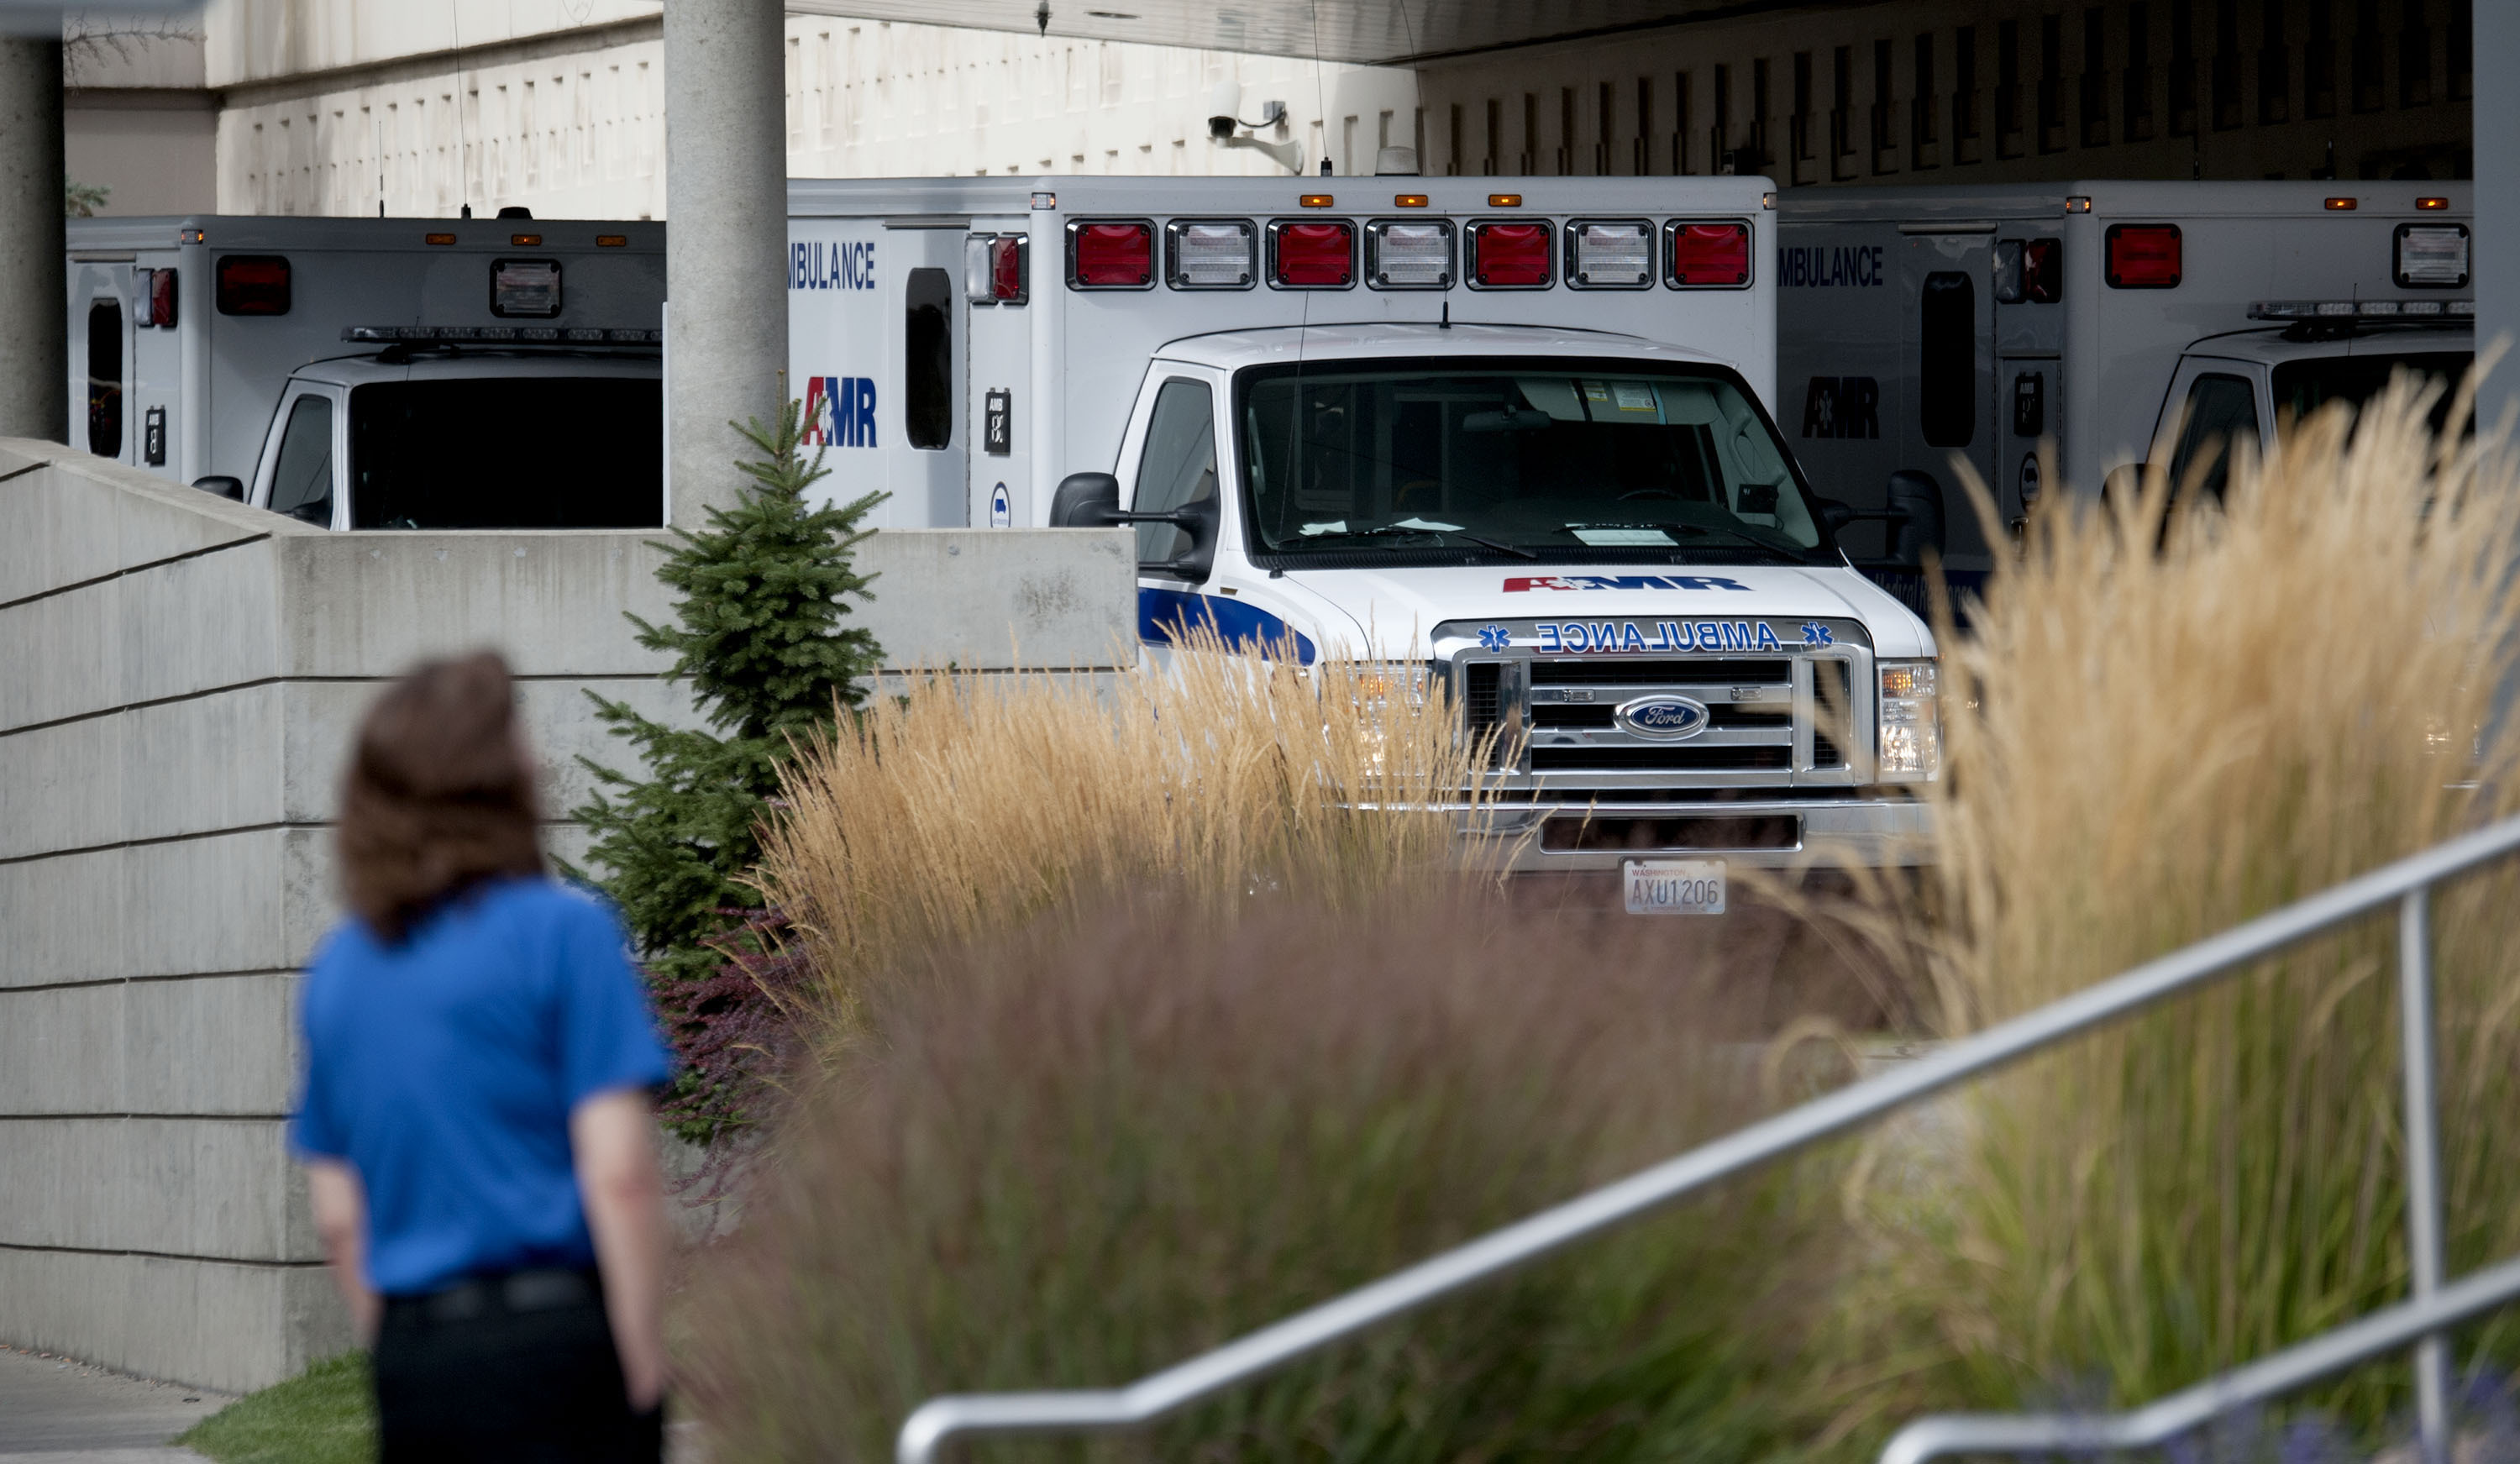 Ambulances line up in the emergency area of Sacred Heart Hospital following reports of the shooting at Freeman High School. (AP)